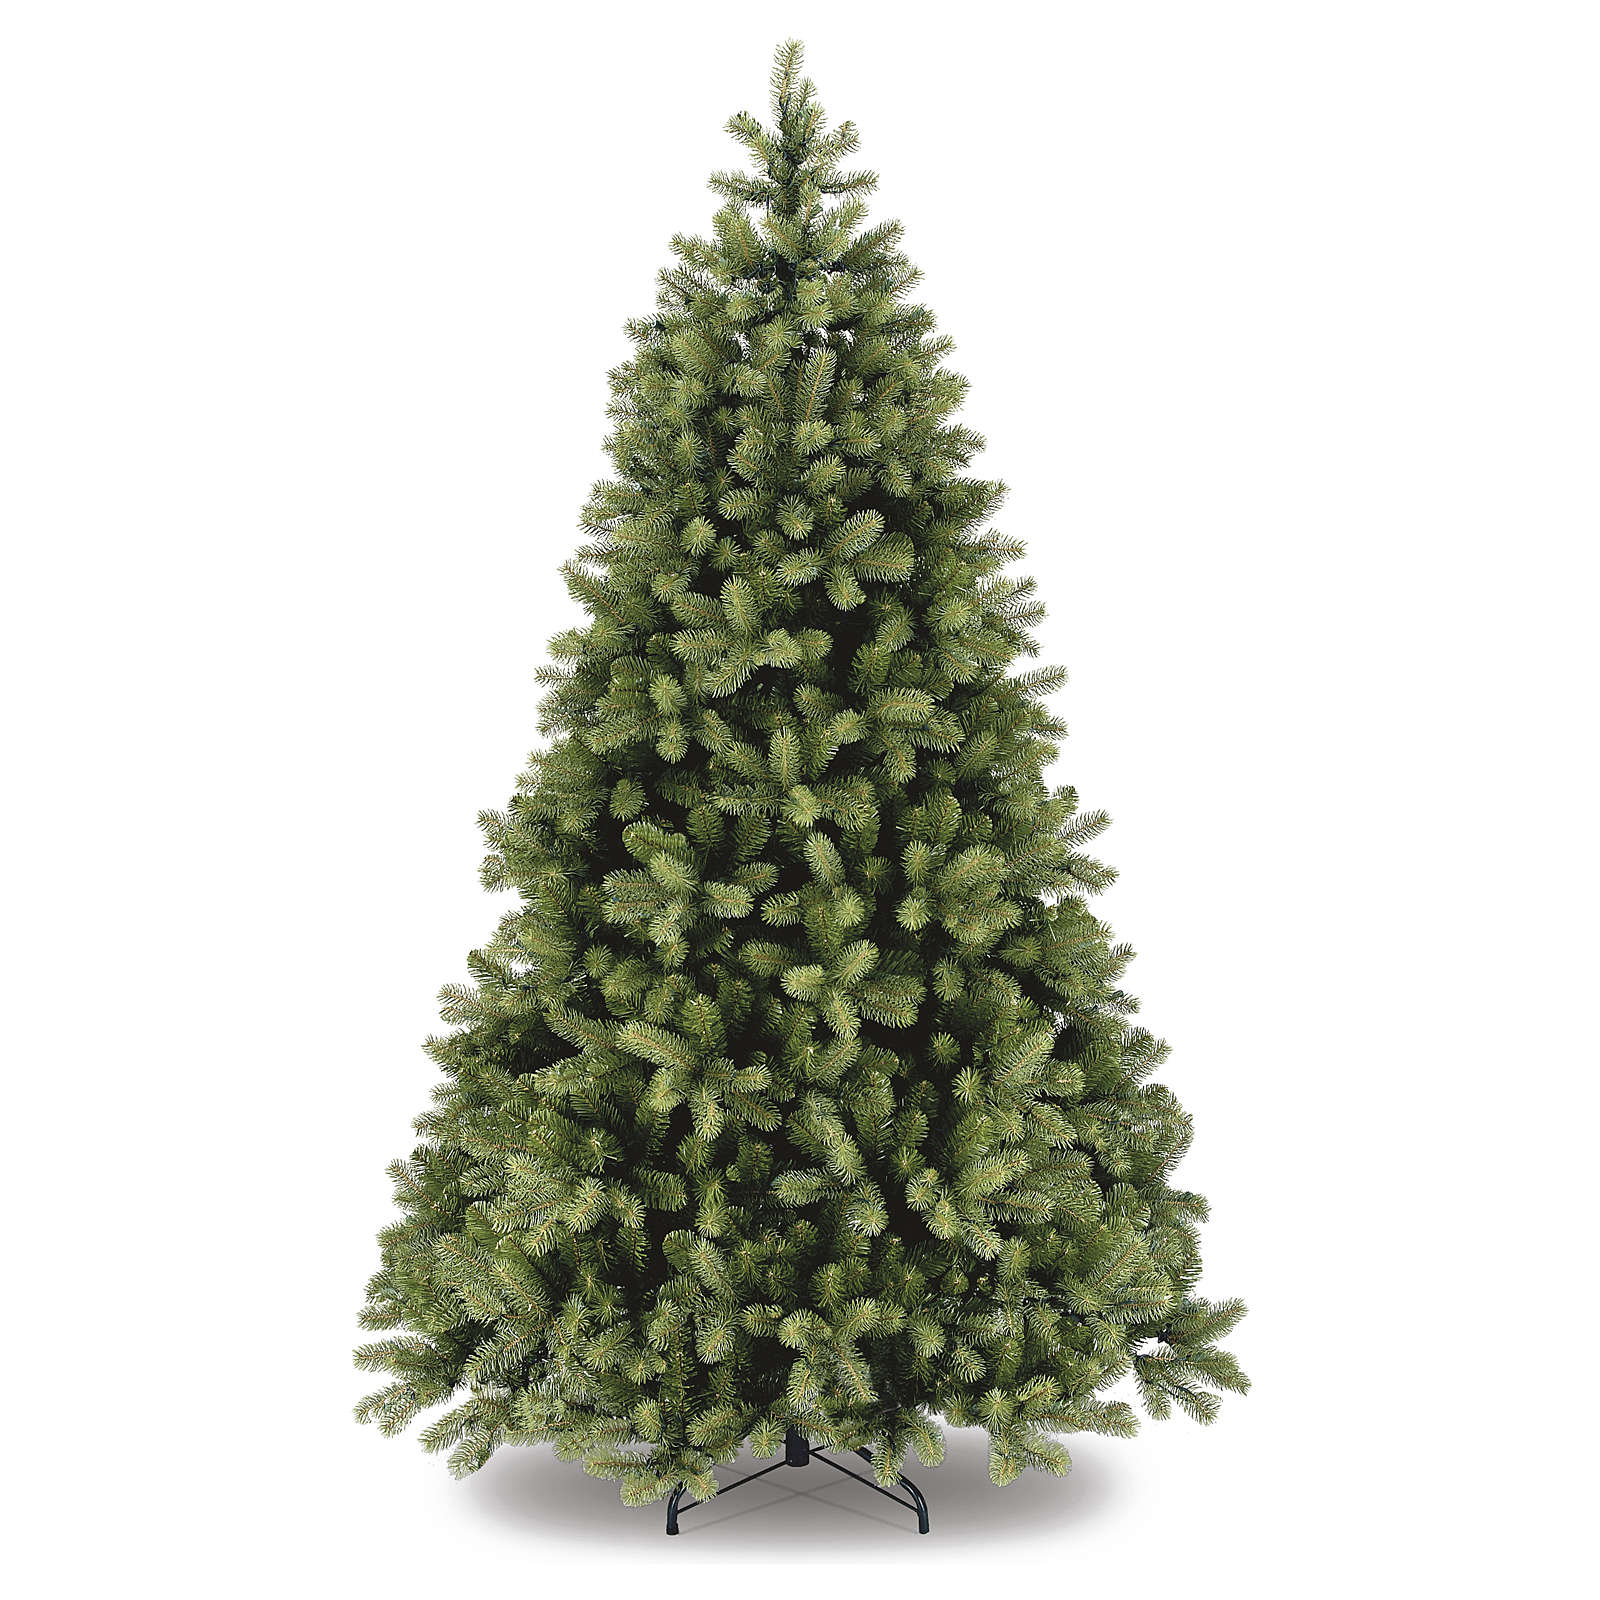 Albero di Natale 210 cm verde Poly Bayberry feel real 3